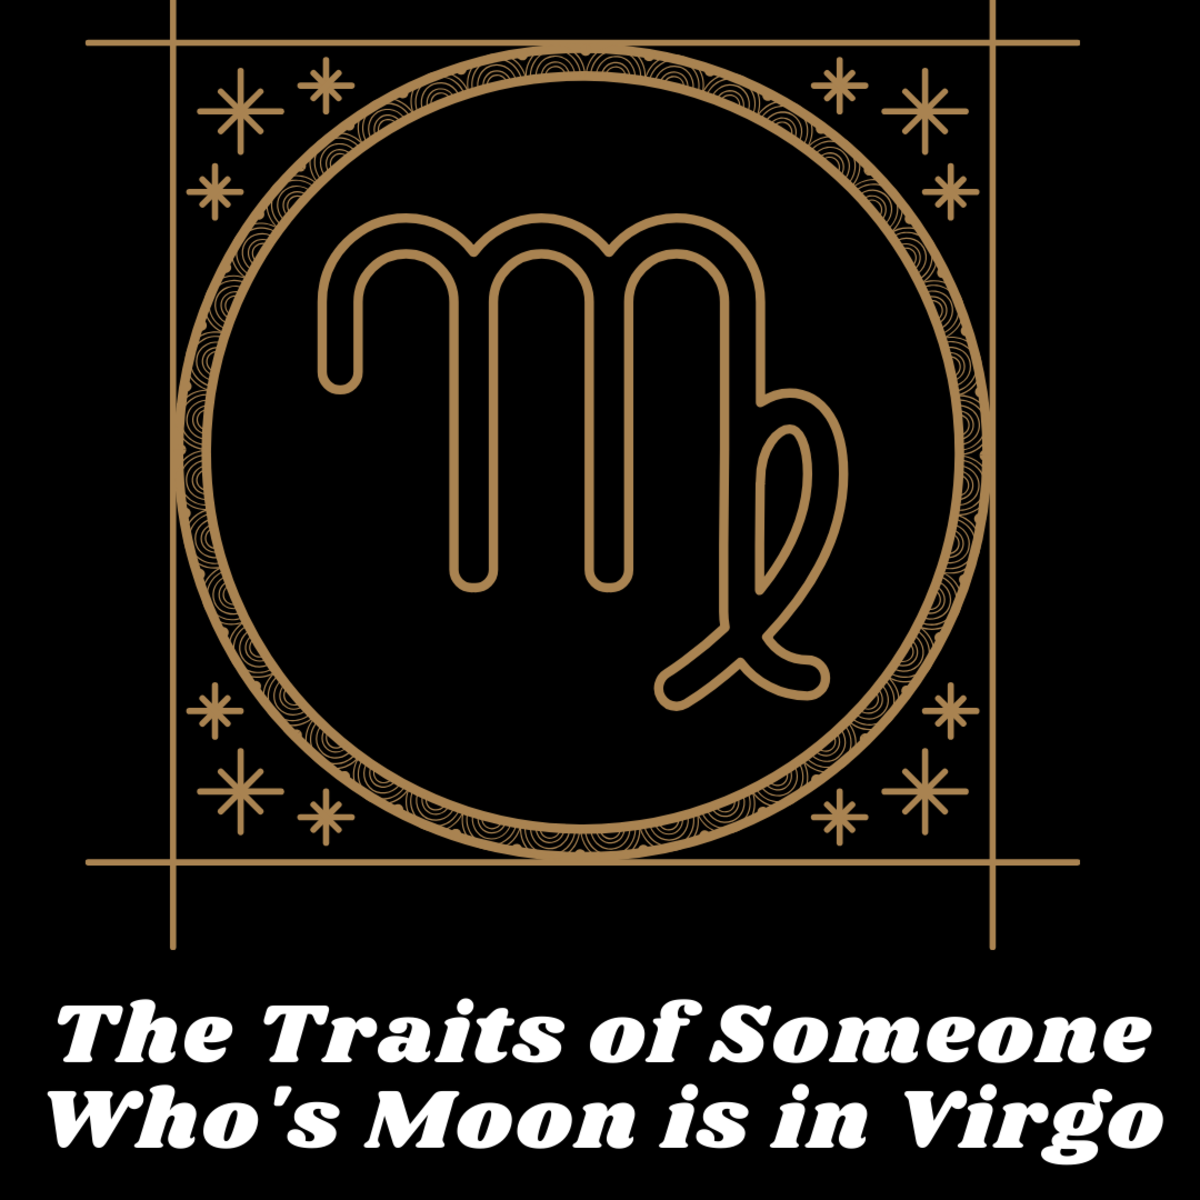 How to Understand the Traits of Someone Who's Moon is in Virgo